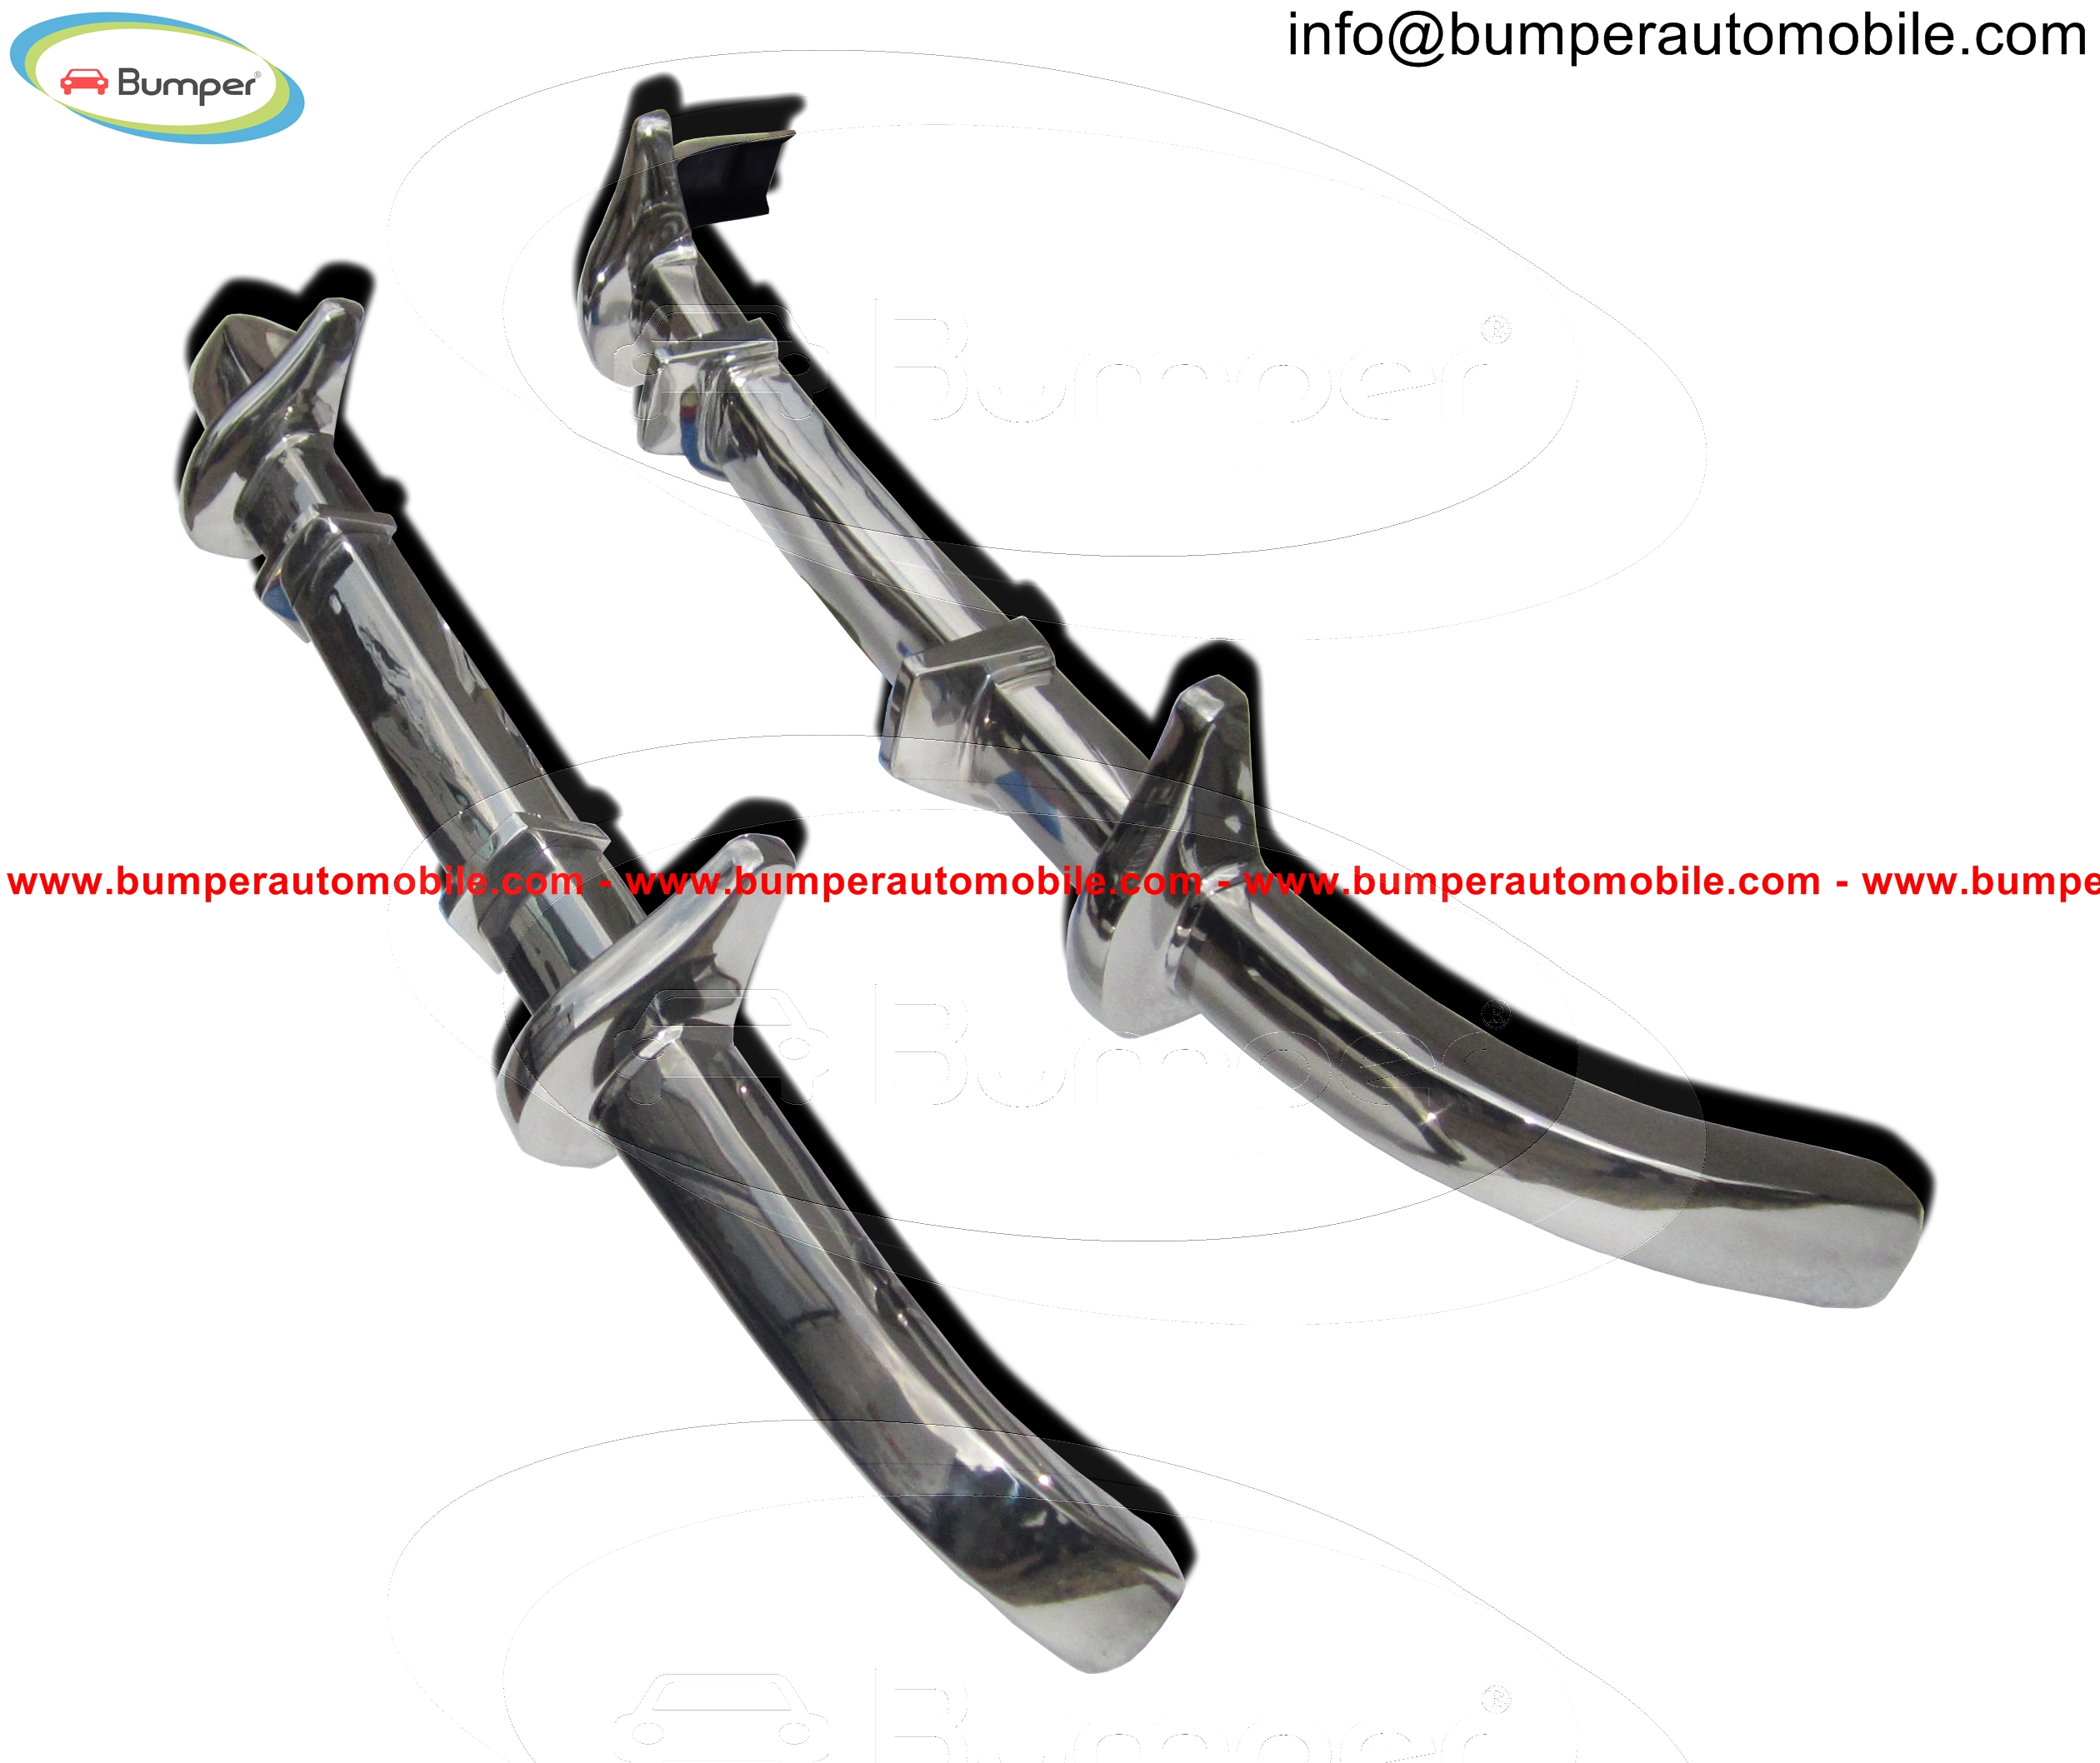 Full set bumper Mercedes W136 W191 170 models (1946-1955)